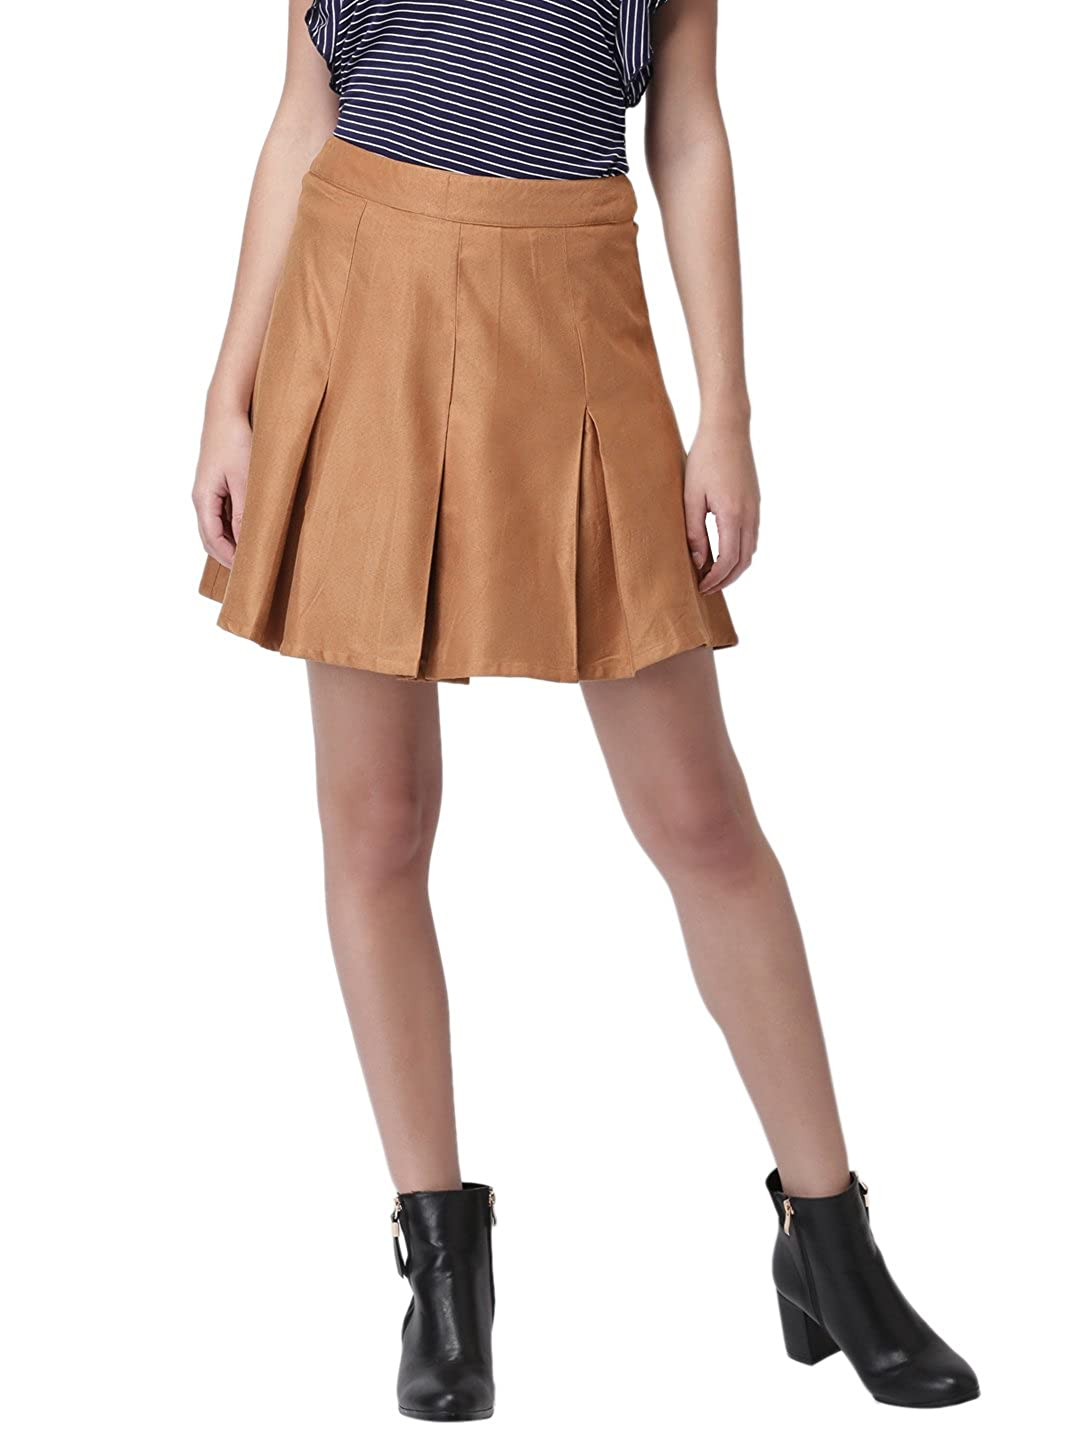 df8d404504 Design: Brown Artificial Suede Short Skirt. Inverted Box pleats for style  with a broad waistband on top. Zipper at the centre back for fastening and  ease.